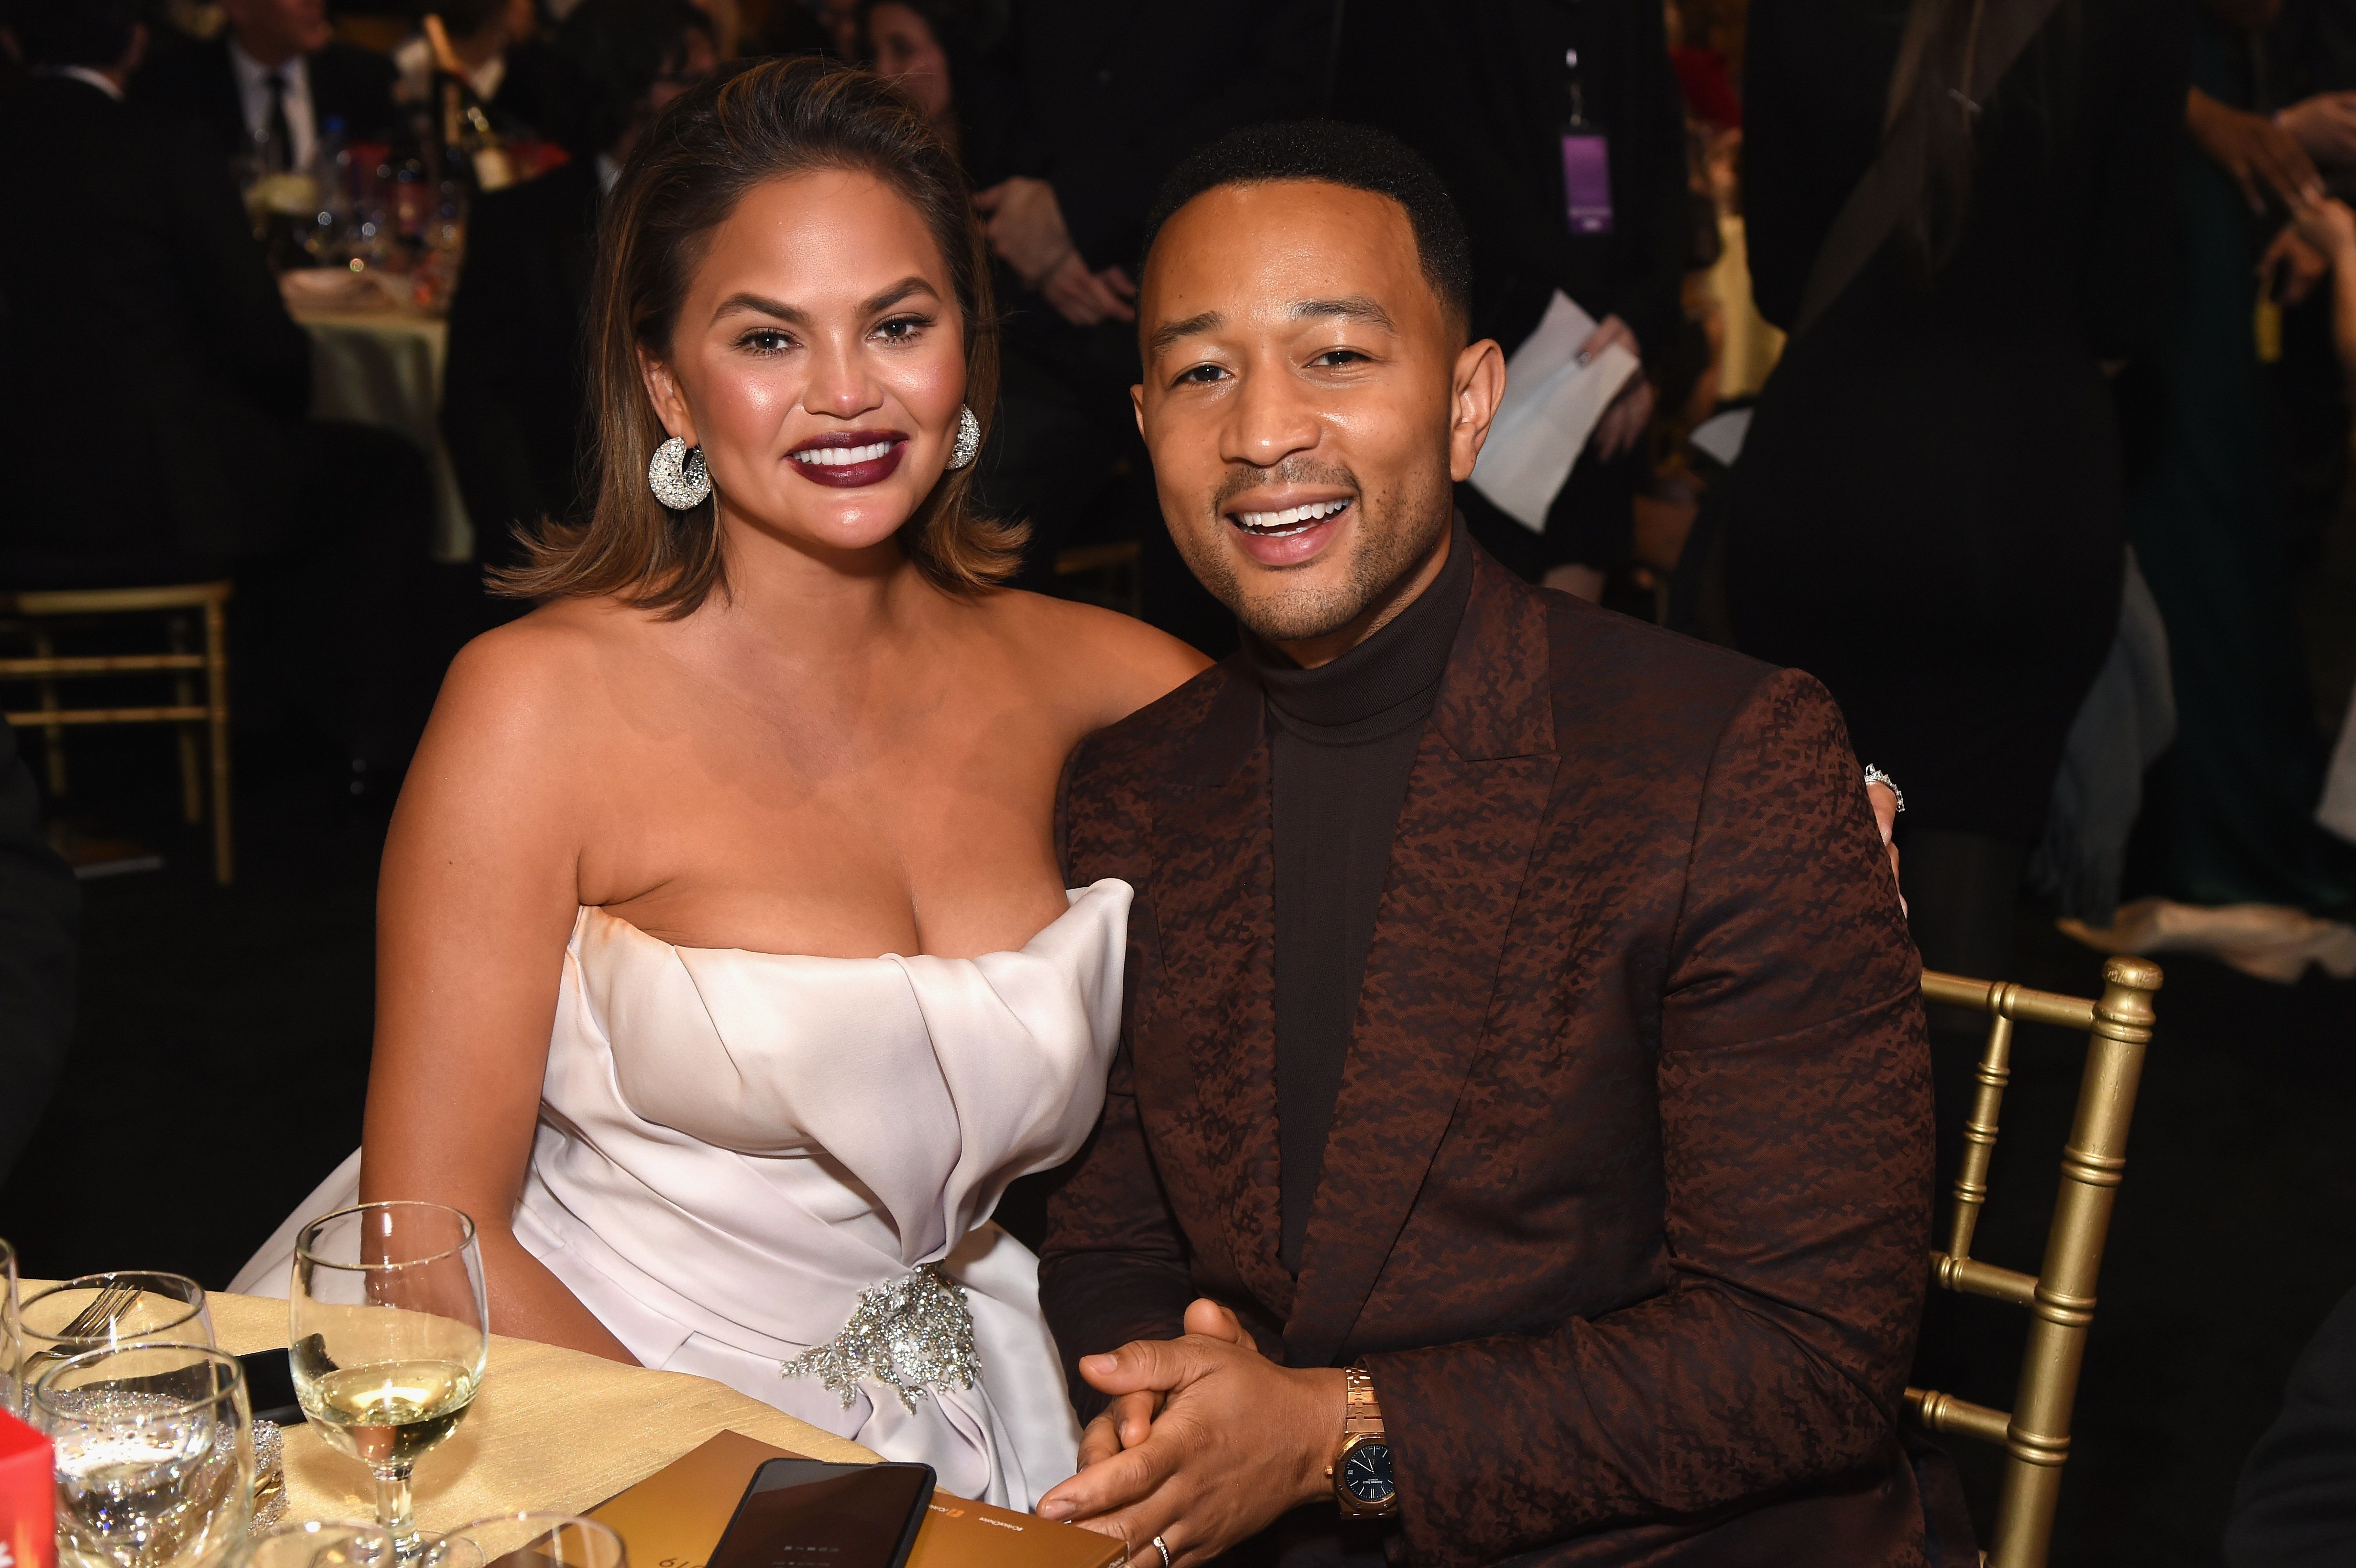 Chrissy Teigen and John Legend are parents to Luna, 2, and Miles, 8 months this week.